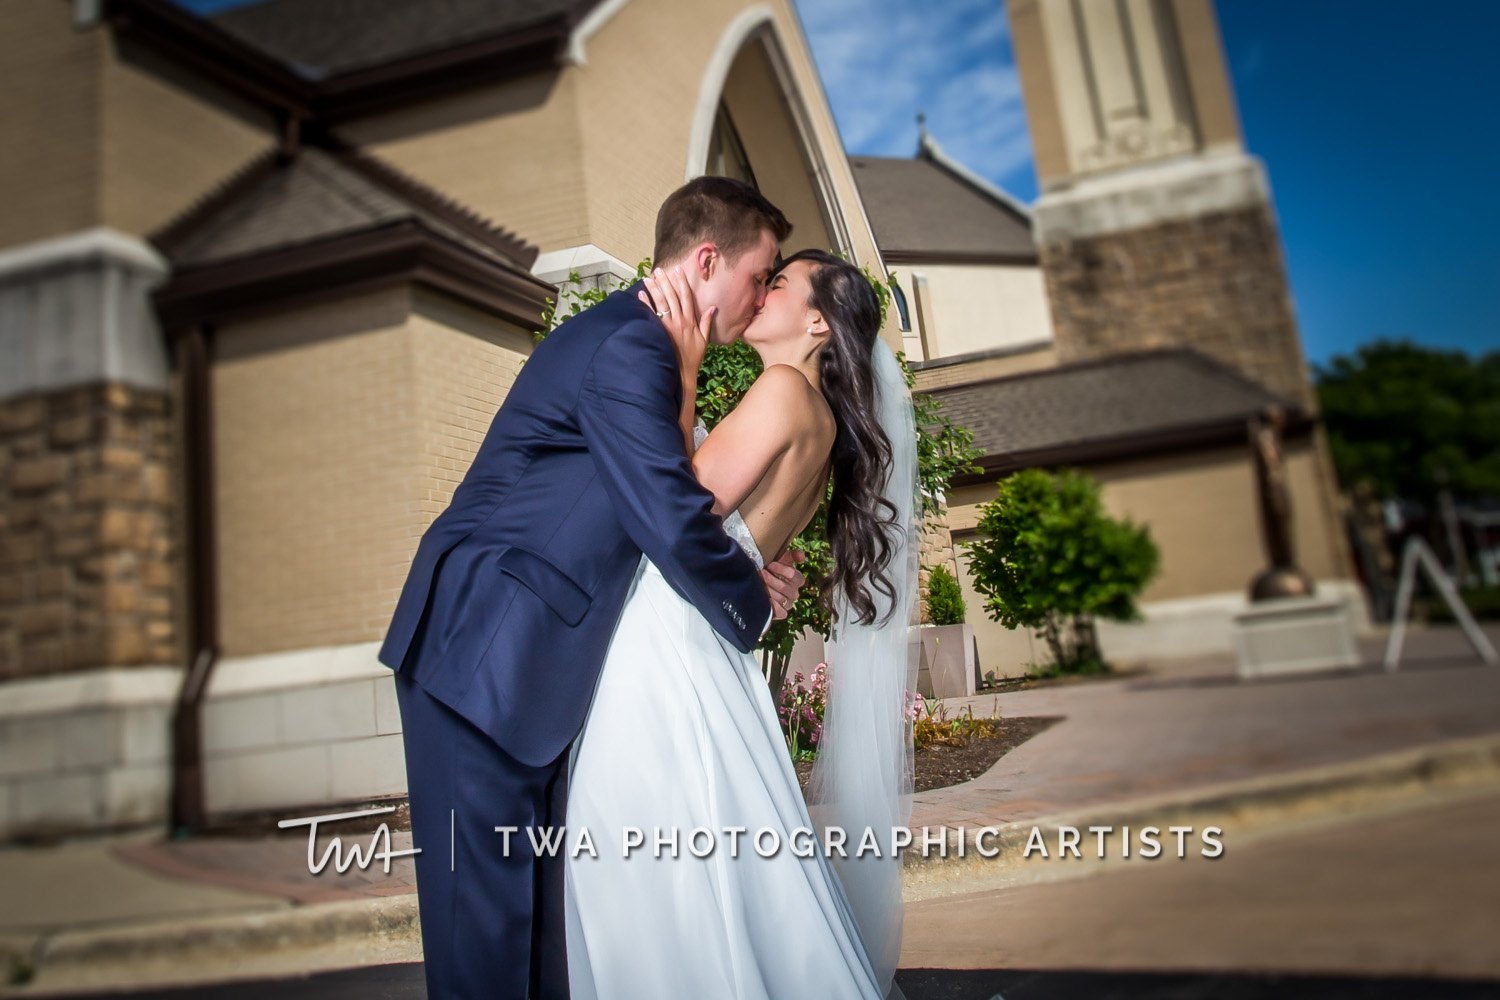 Chicago-Wedding-Photographer-TWA-Photographic-Artists-Private-Residence_Matar_Peters_SG-0264